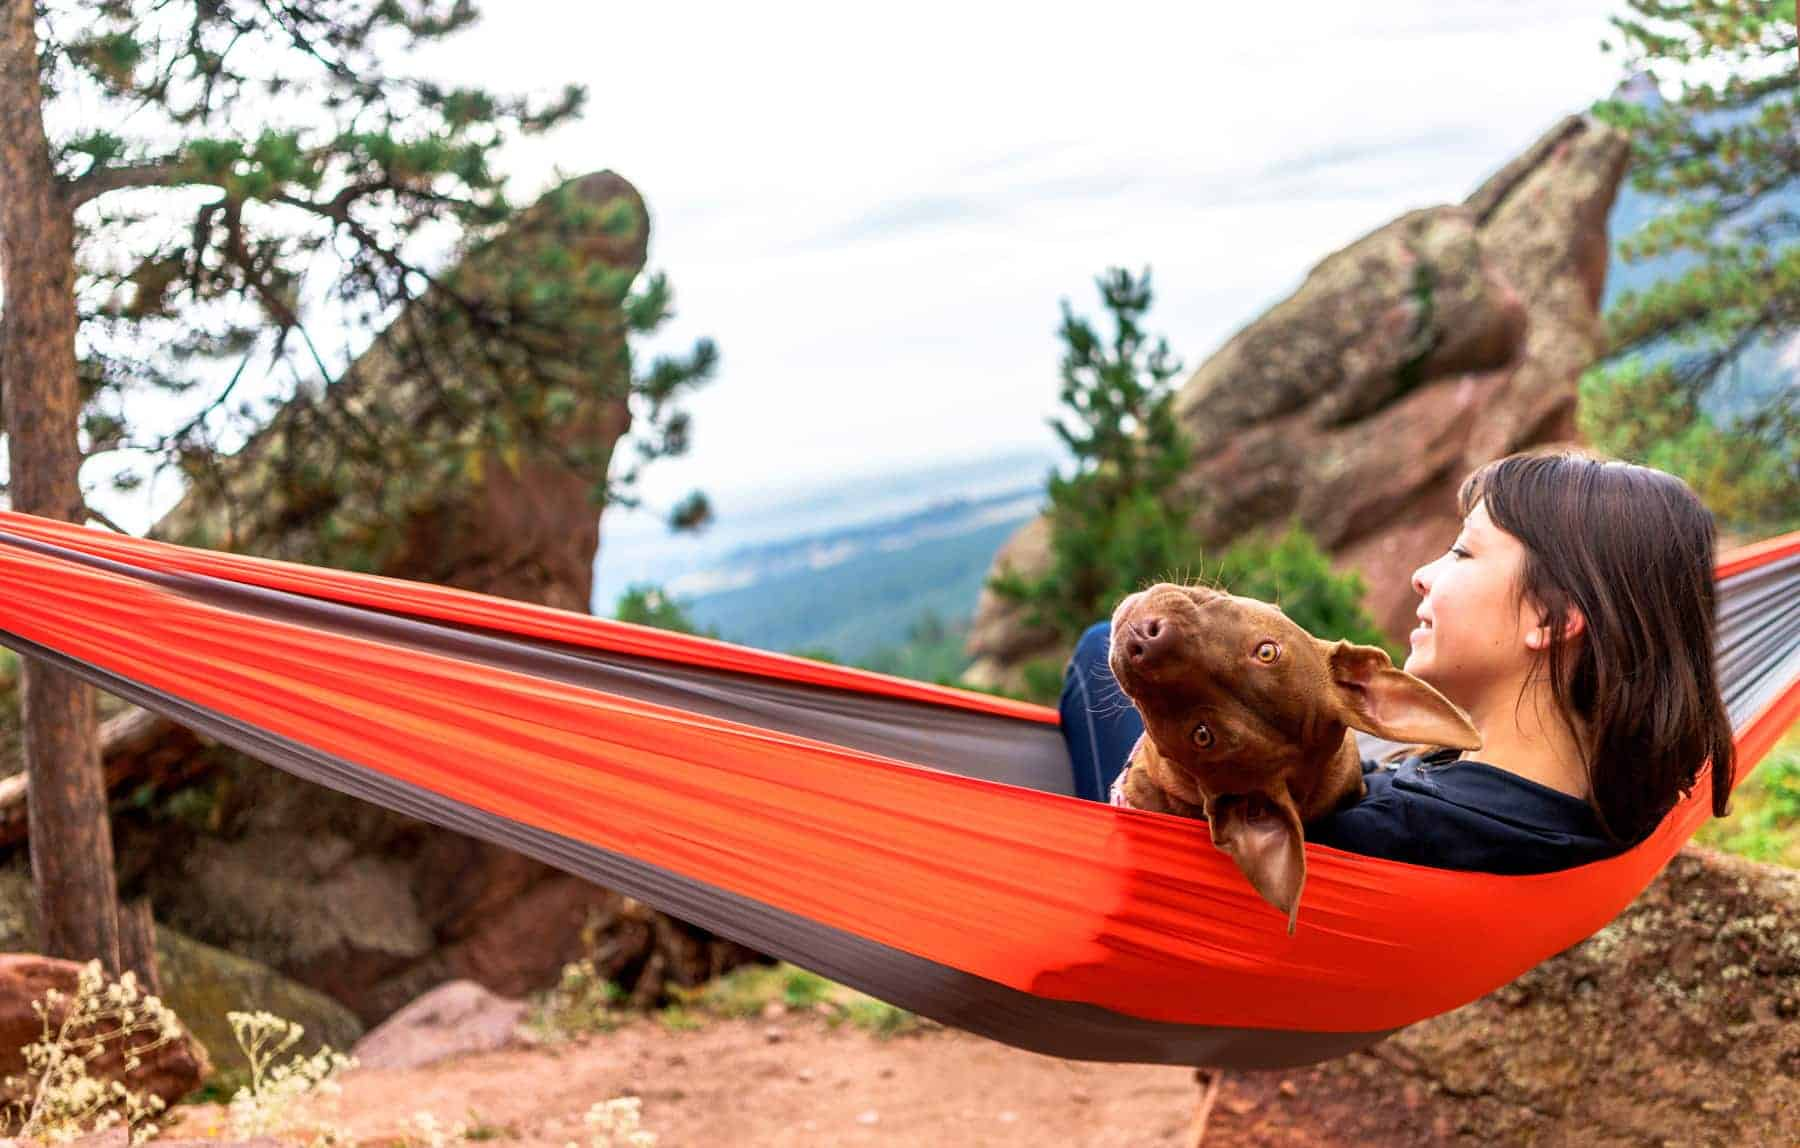 Young woman and dog in a custom hammock hanging in the mountains.